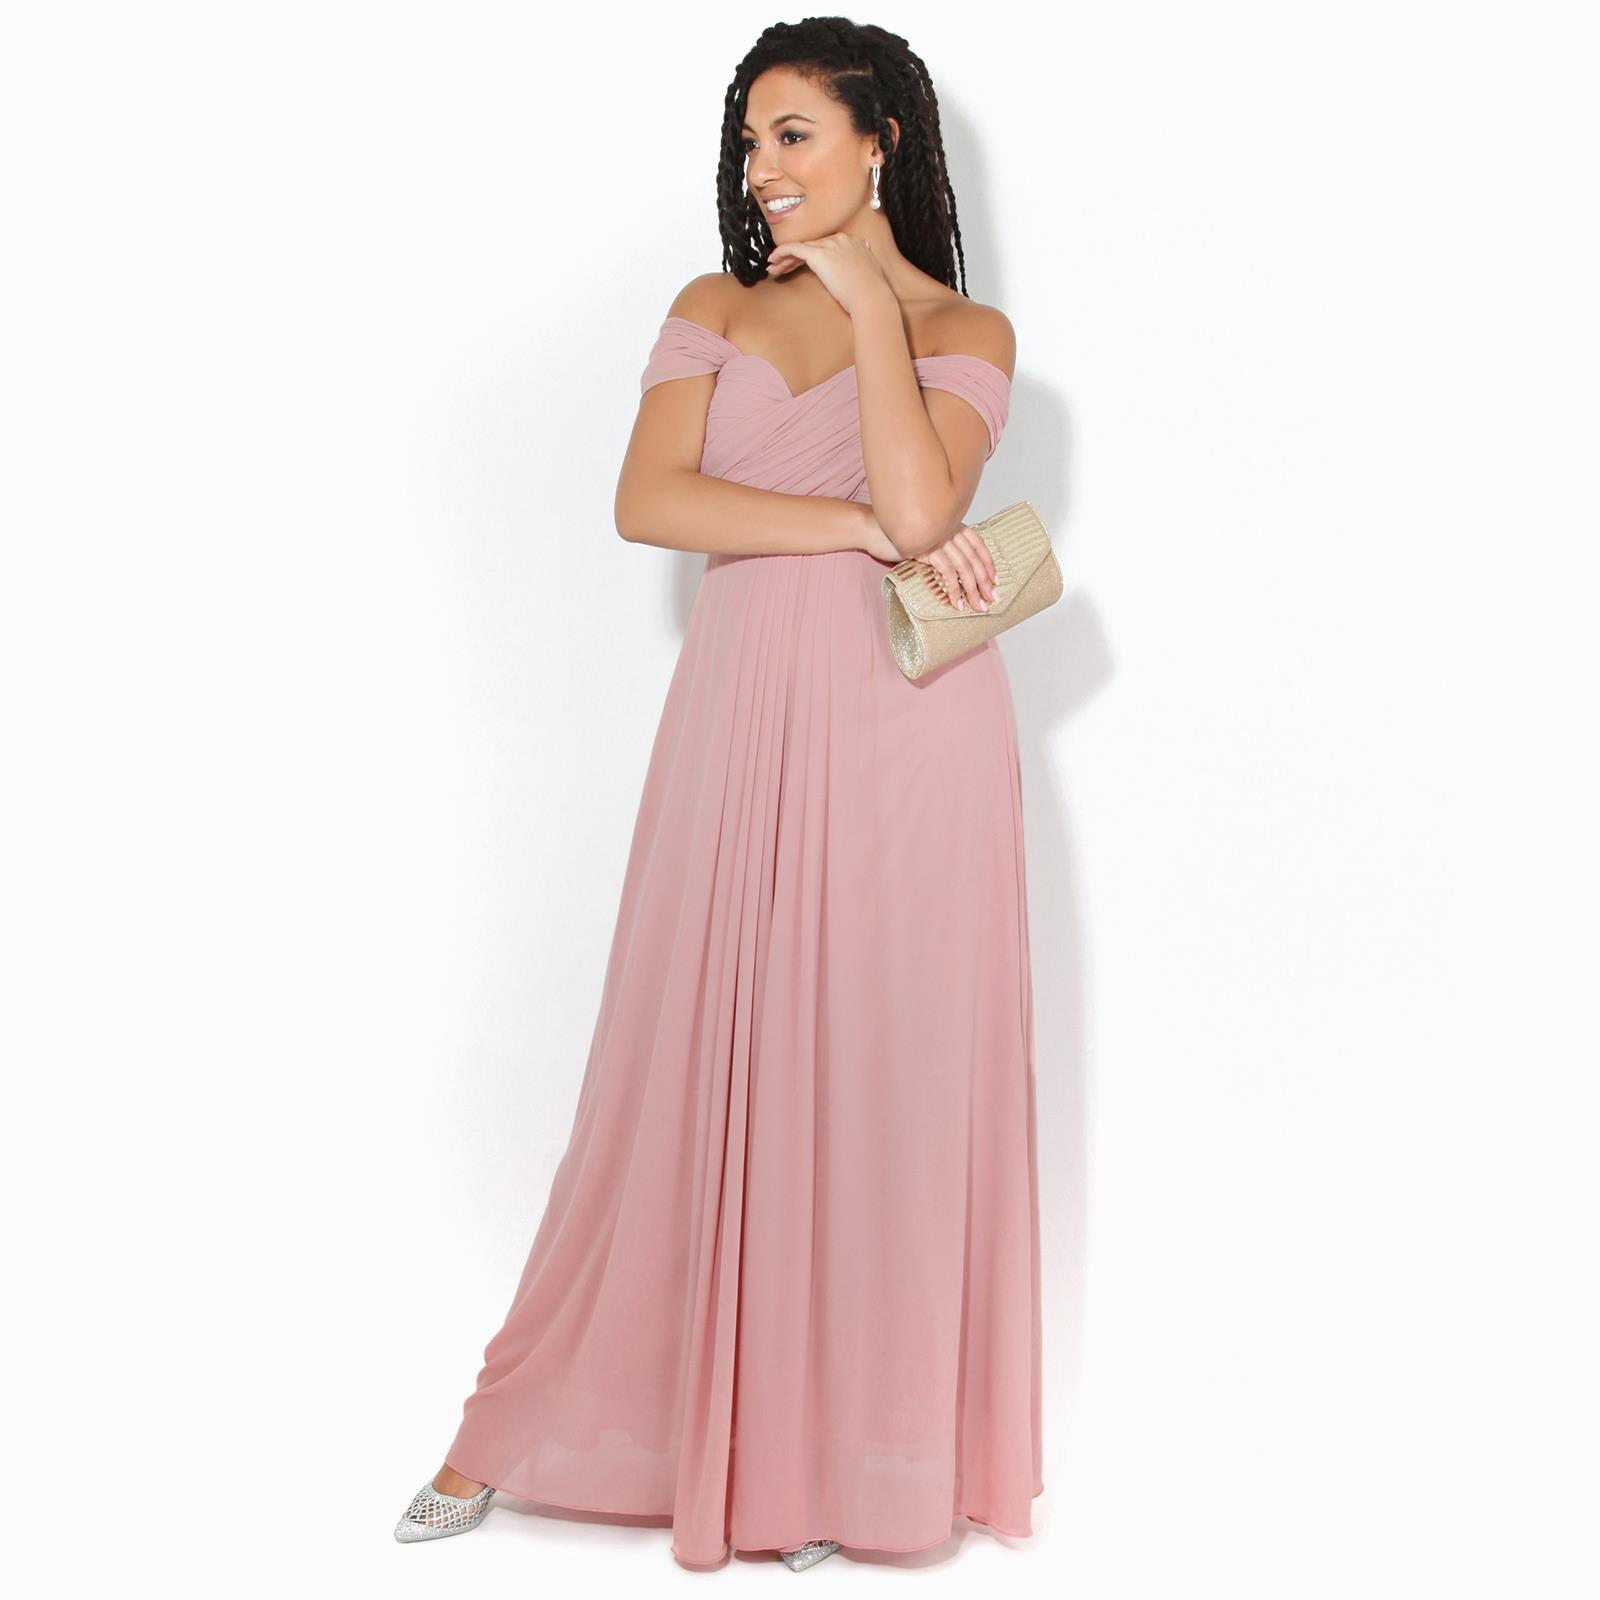 Women-Formal-Dress-Evening-Wedding-Ball-Long-Gown-Maxi-Prom-On-Off-Shoulder-8-18 thumbnail 23